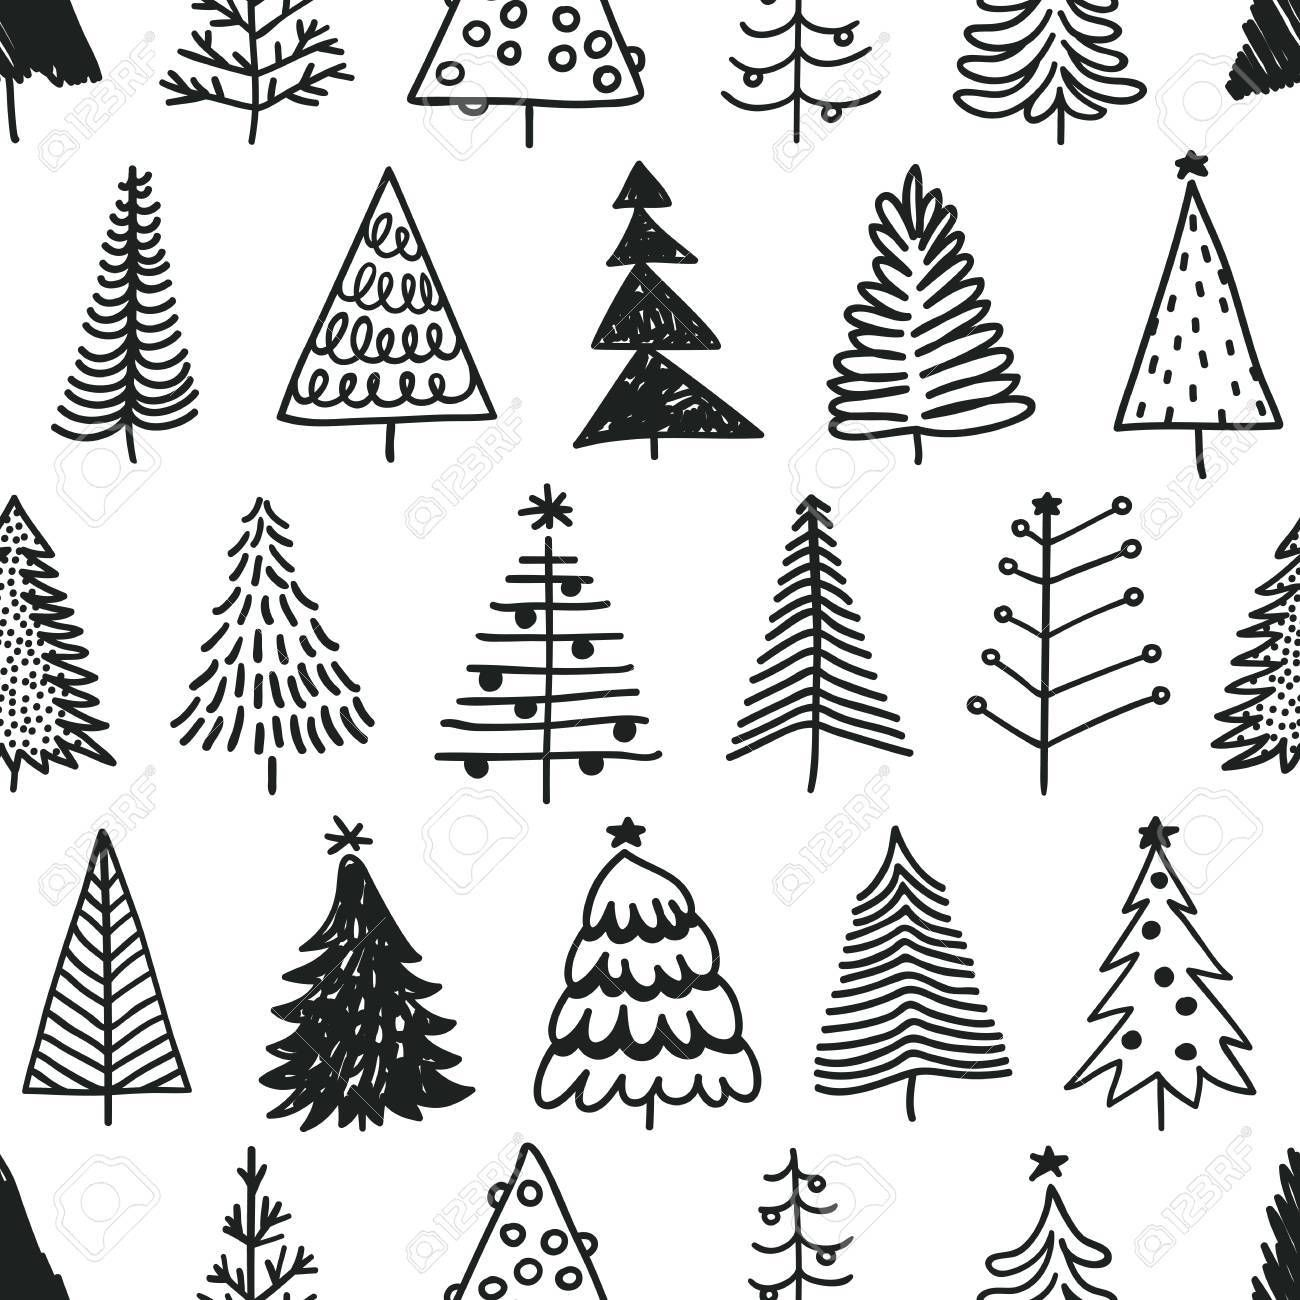 Seamless Pattern With Hand Drawn Christmas Tree Abstract Doodle Drawing Winter Wood Vector Art Holidays Christmas Tree Drawing Tree Doodle Christmas Doodles